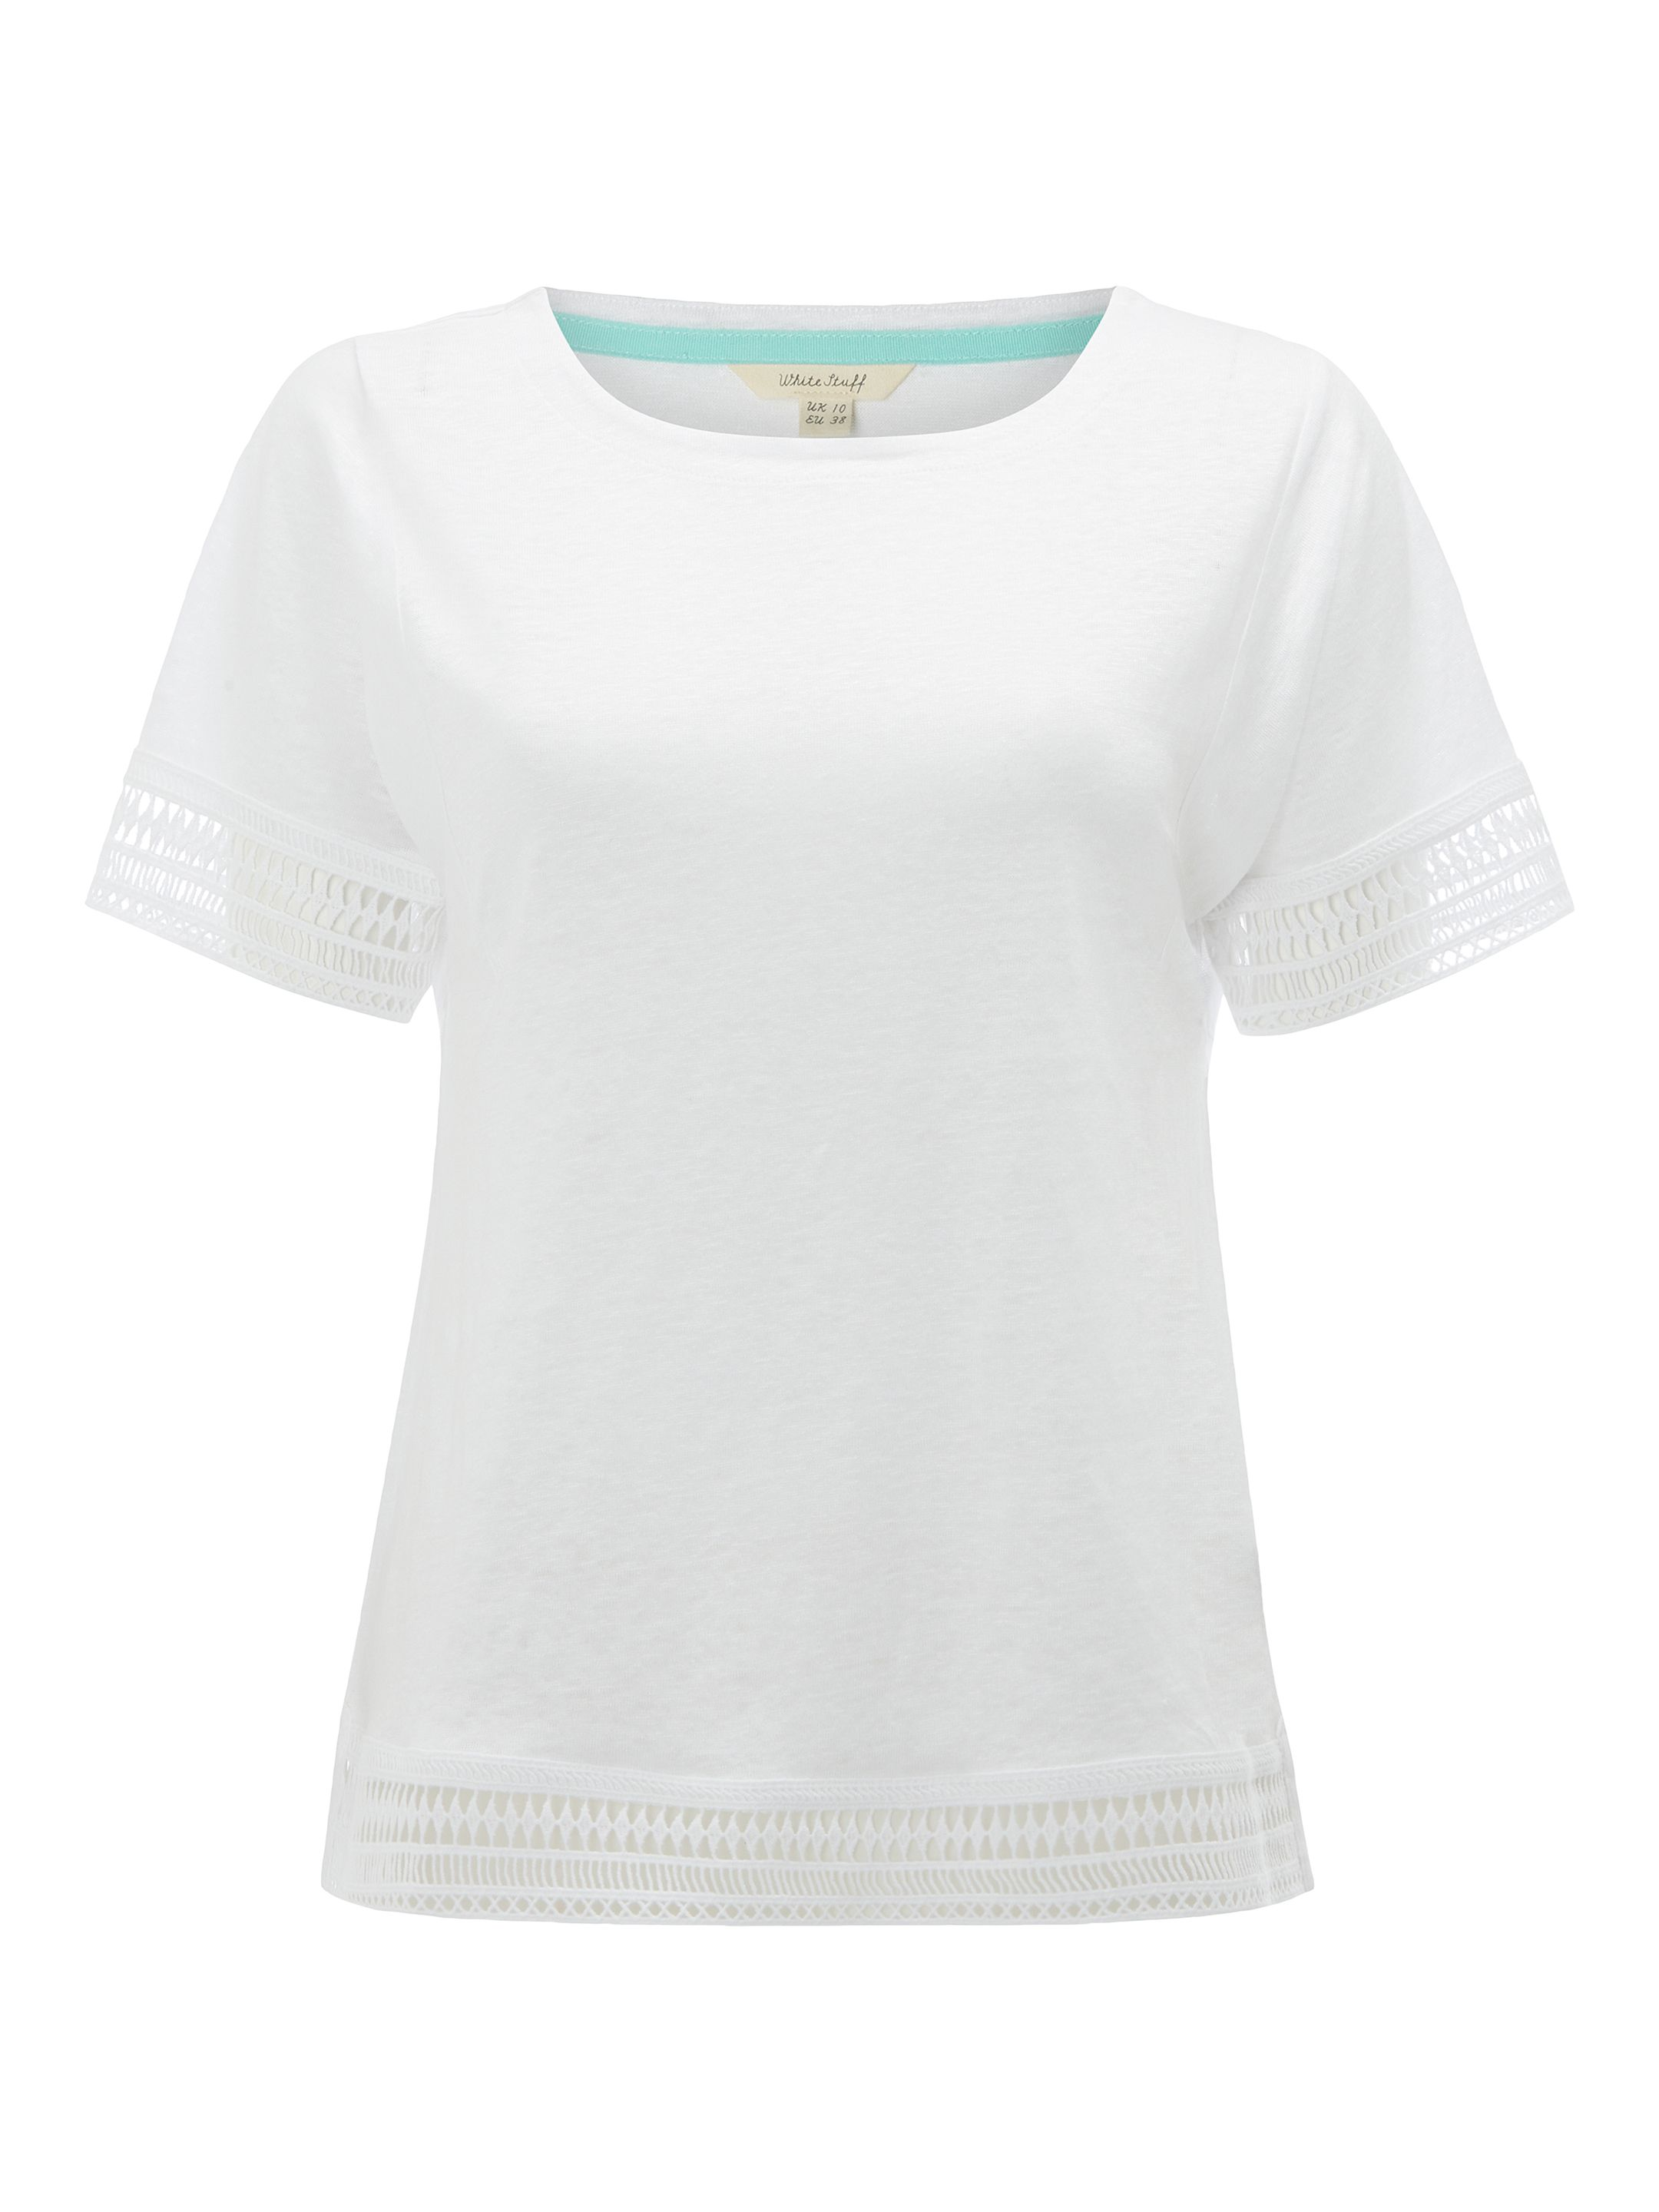 White Stuff Shelly Jersey Tee, White